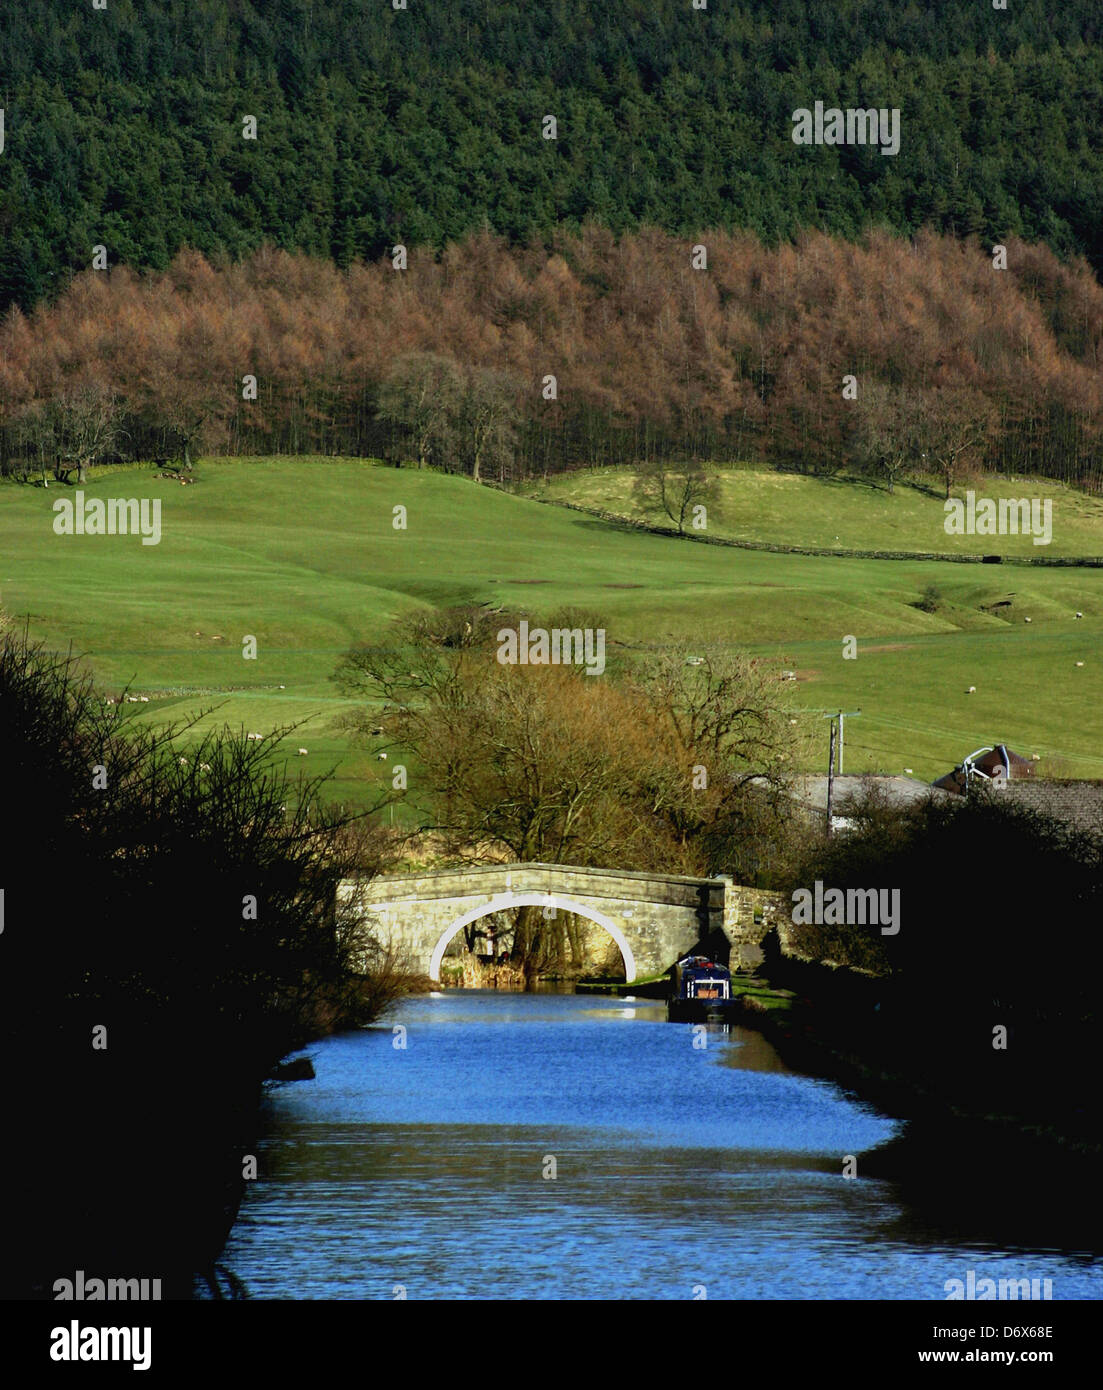 Ray bridge spanning the Leeds and Liverpool Canal at Gargrave in North Yorkshire. - Stock Image